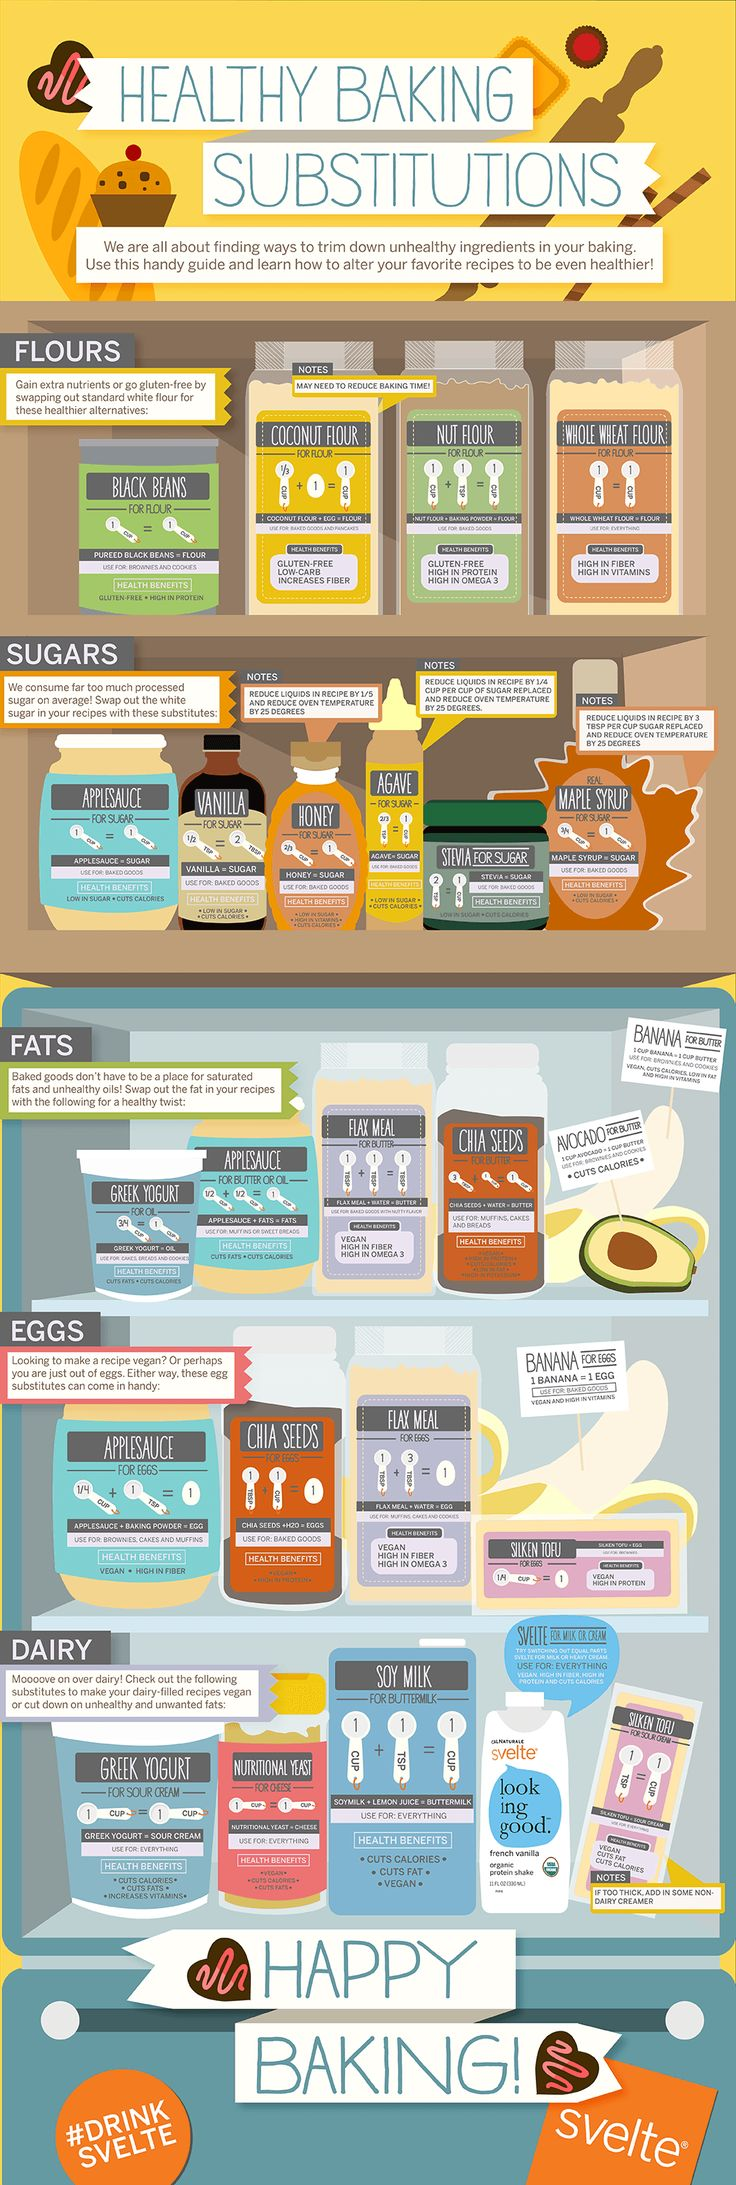 Svelte Vegan and Gluten-Free Protein Shakes | Healthy Baking Substitutes Infographic